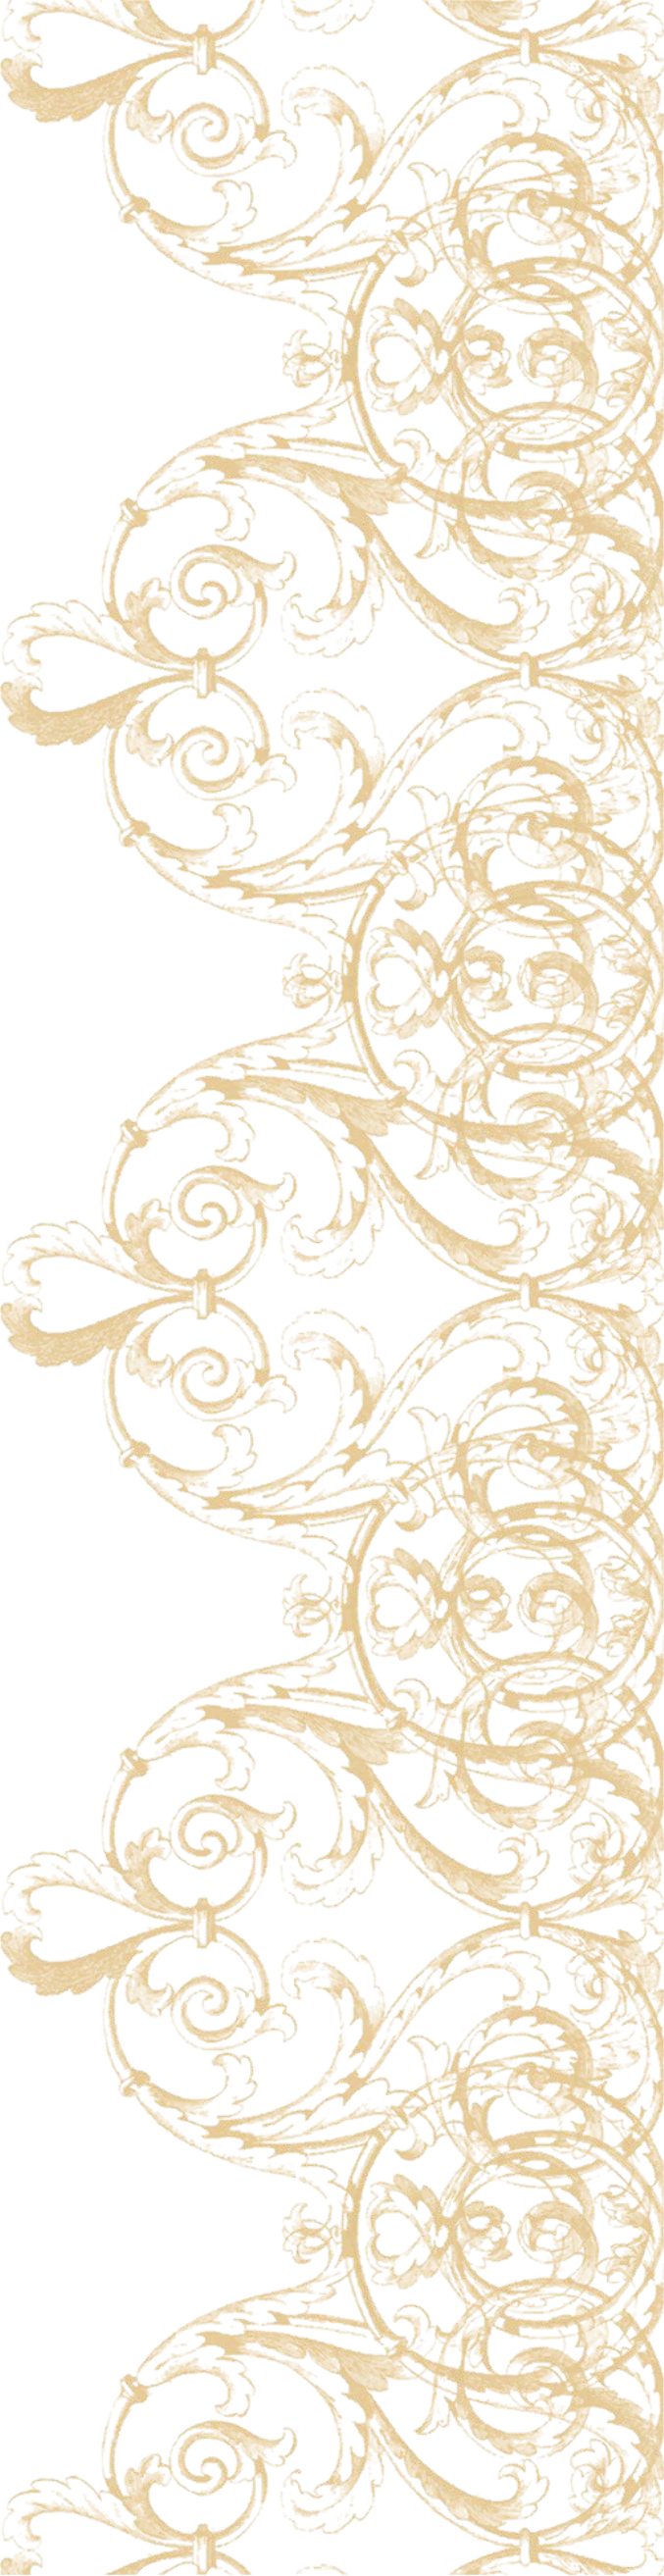 Free Vintage Lace Cliparts, Download Free Clip Art, Free Clip Art on.